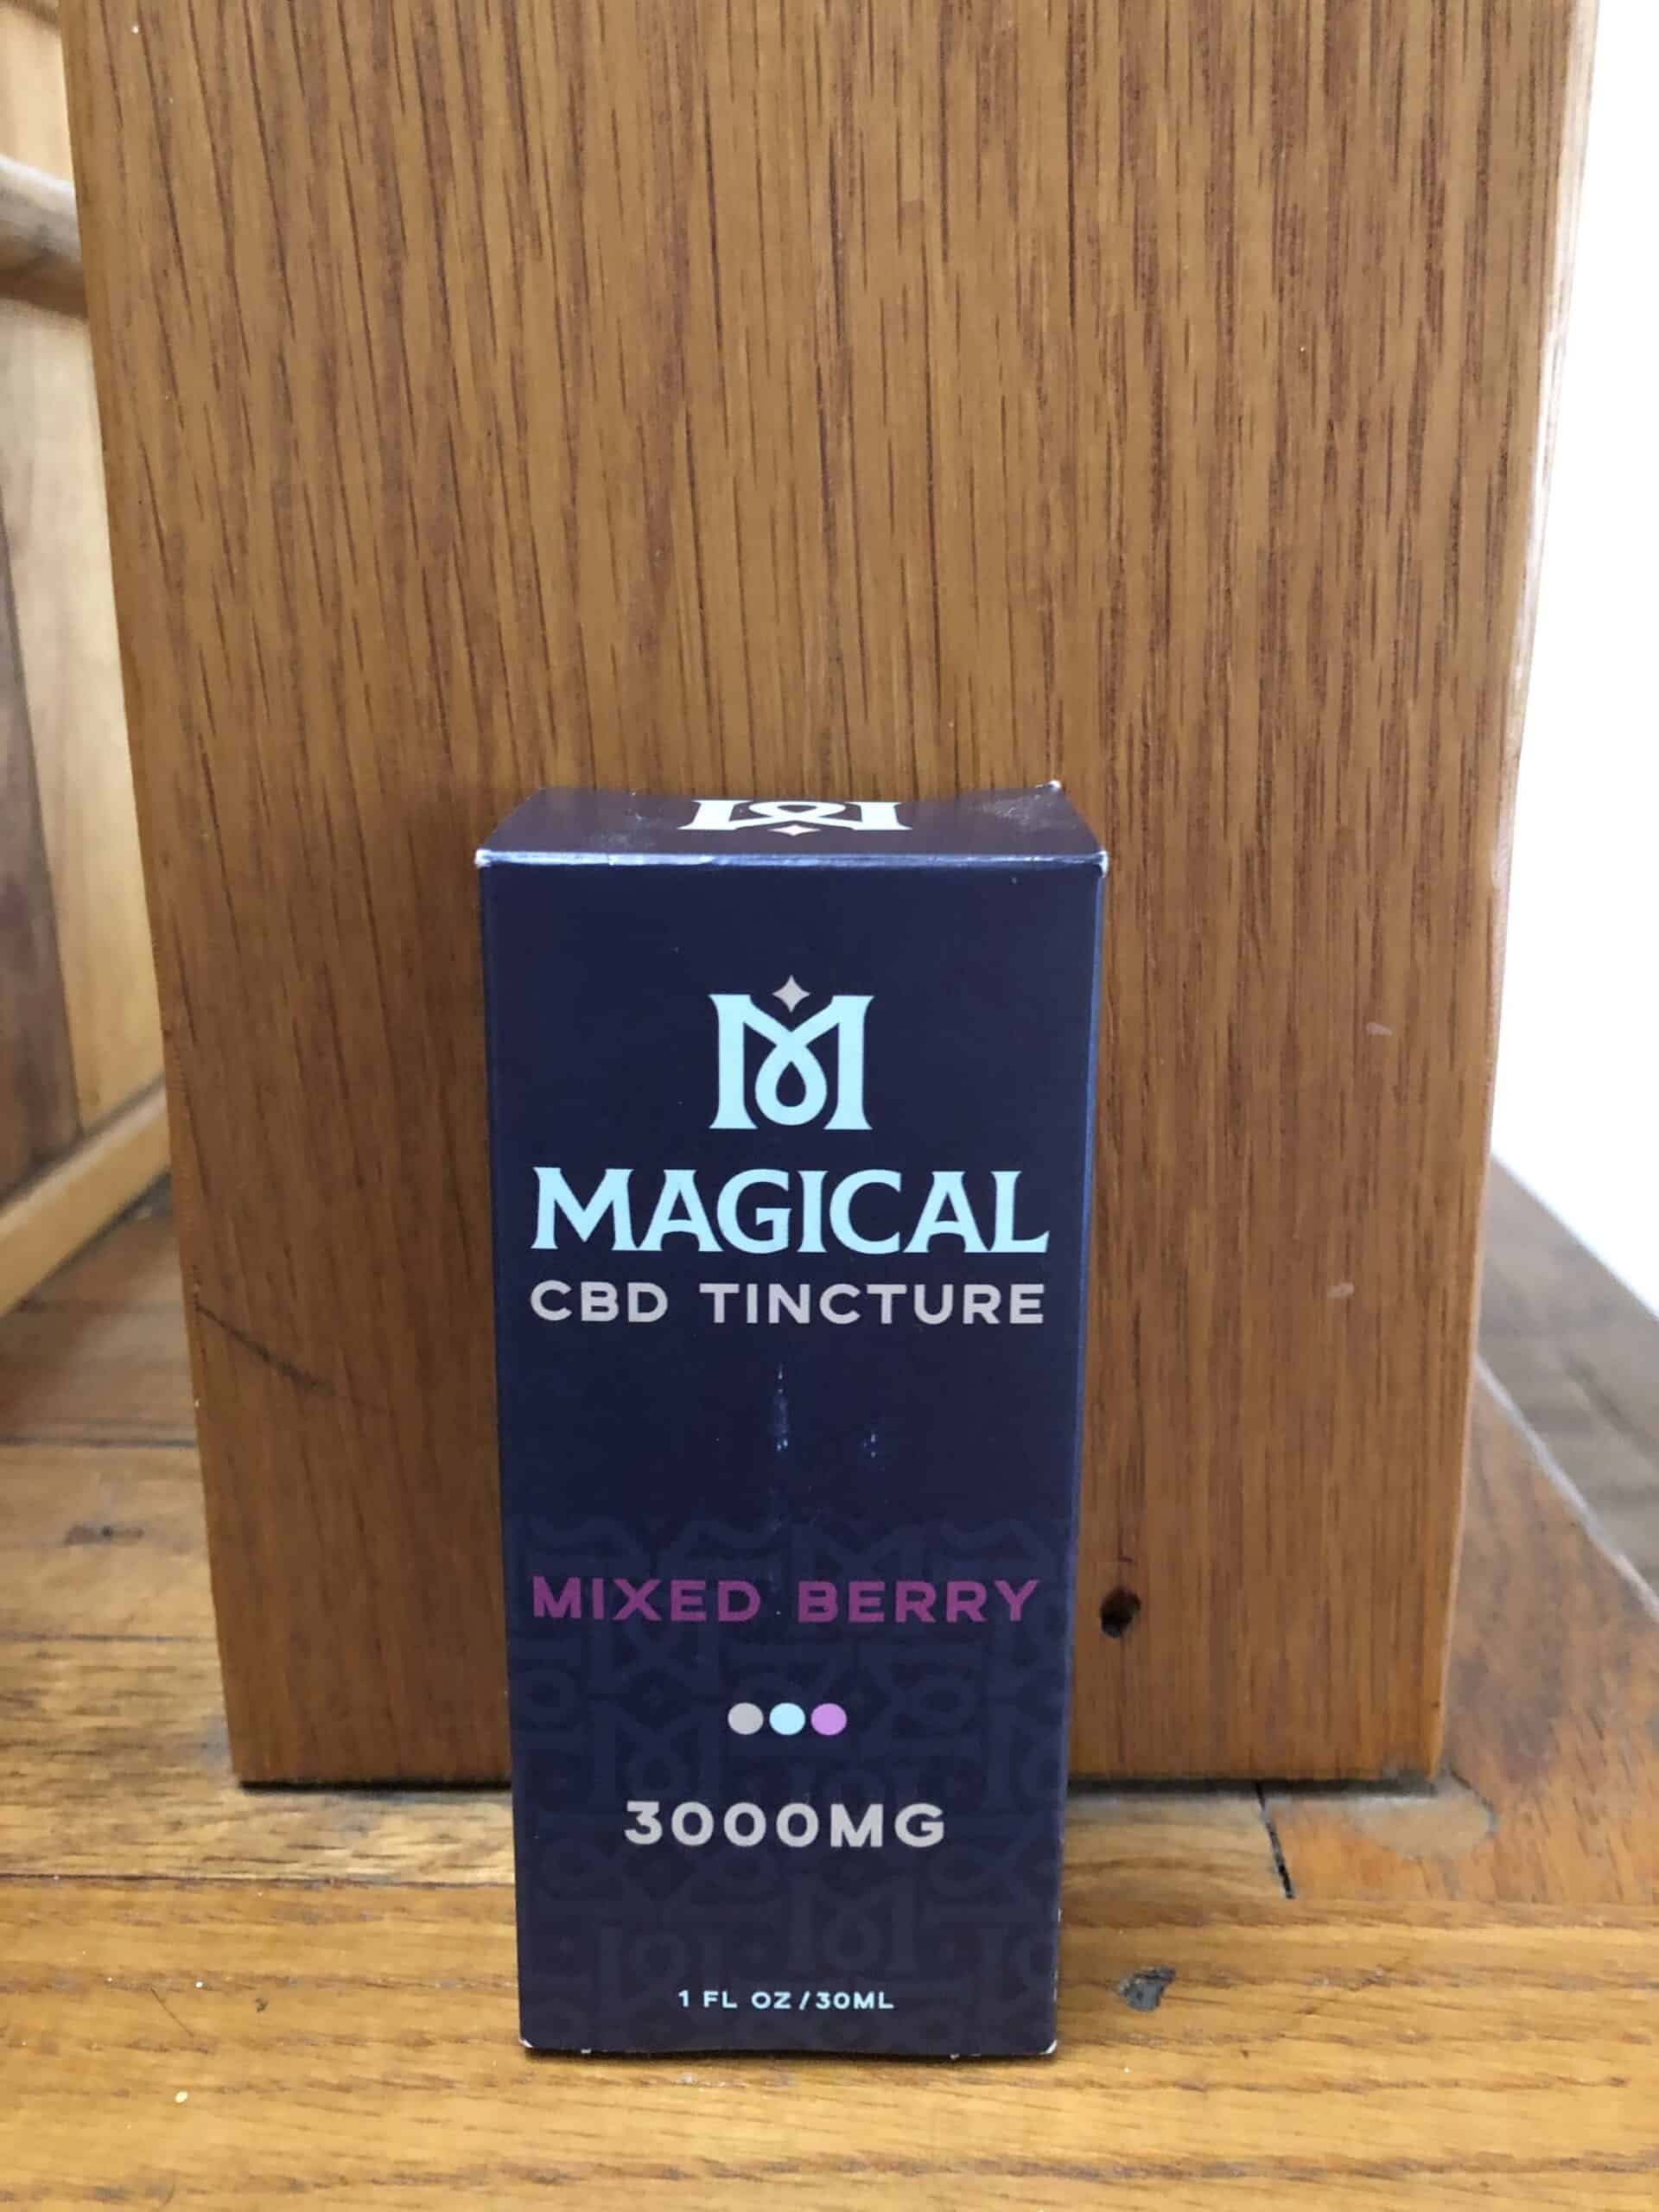 Magical CBD Mixed Berry 3000mg Tincture Review